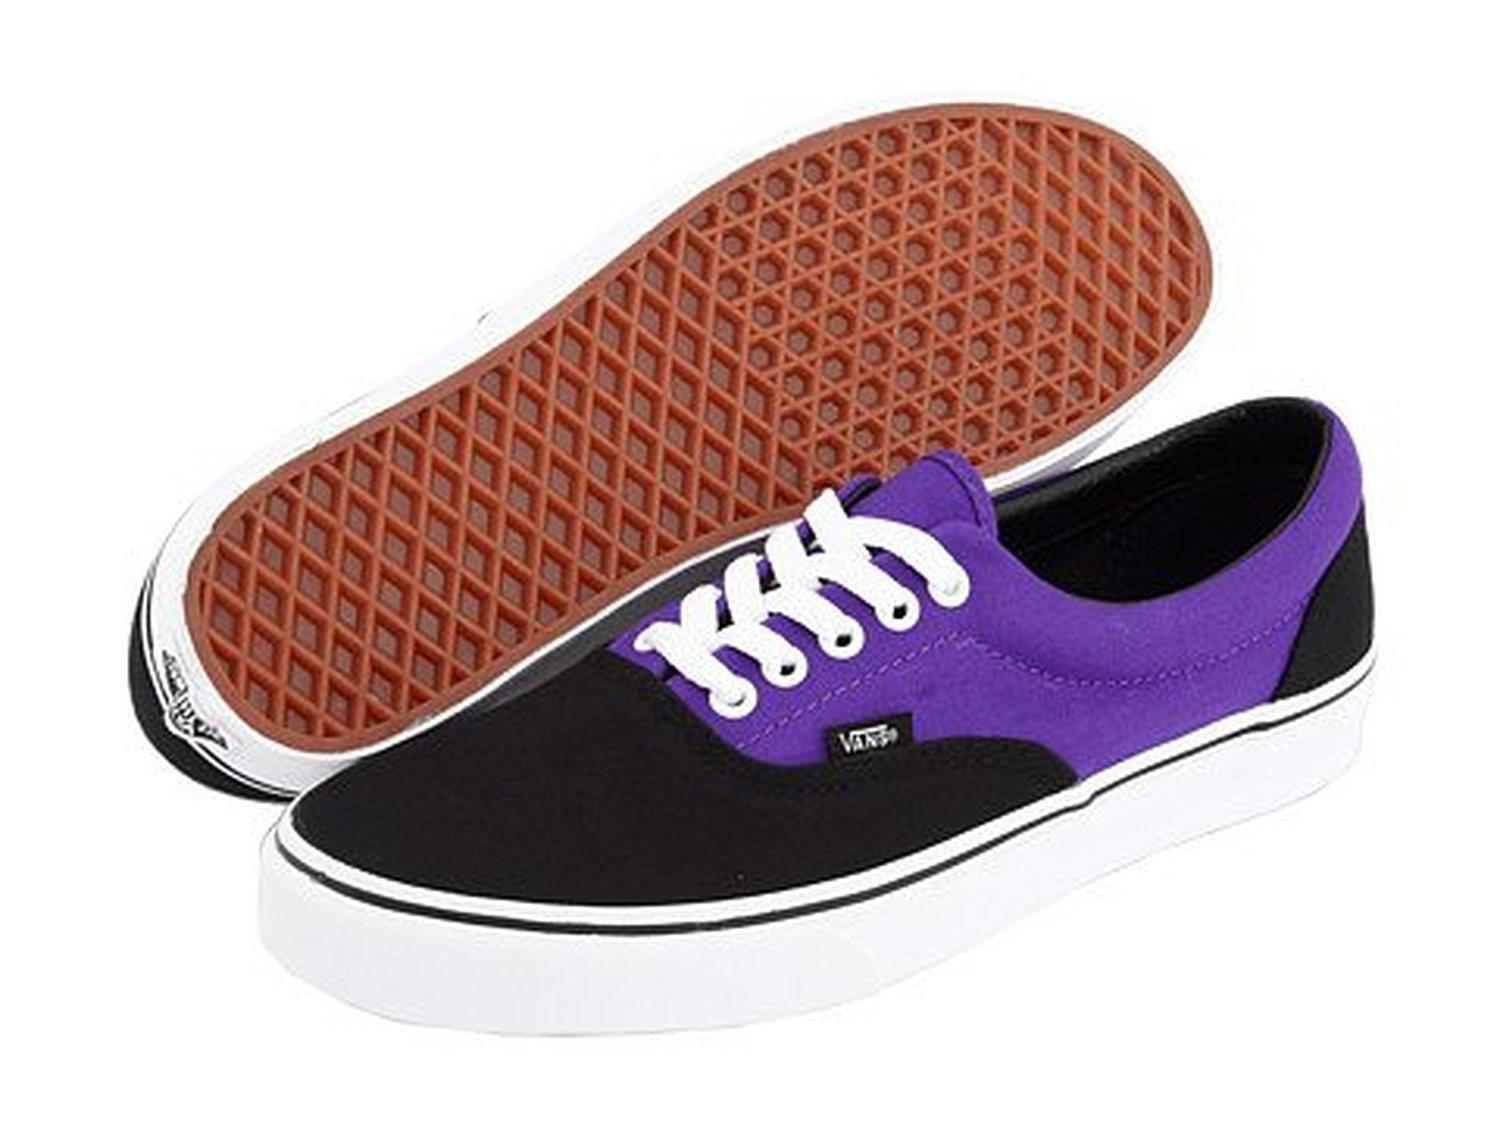 cd7d10ba299f Lyst - Vans Mens Era Royal Purple black Skateboarding Shoes in ...